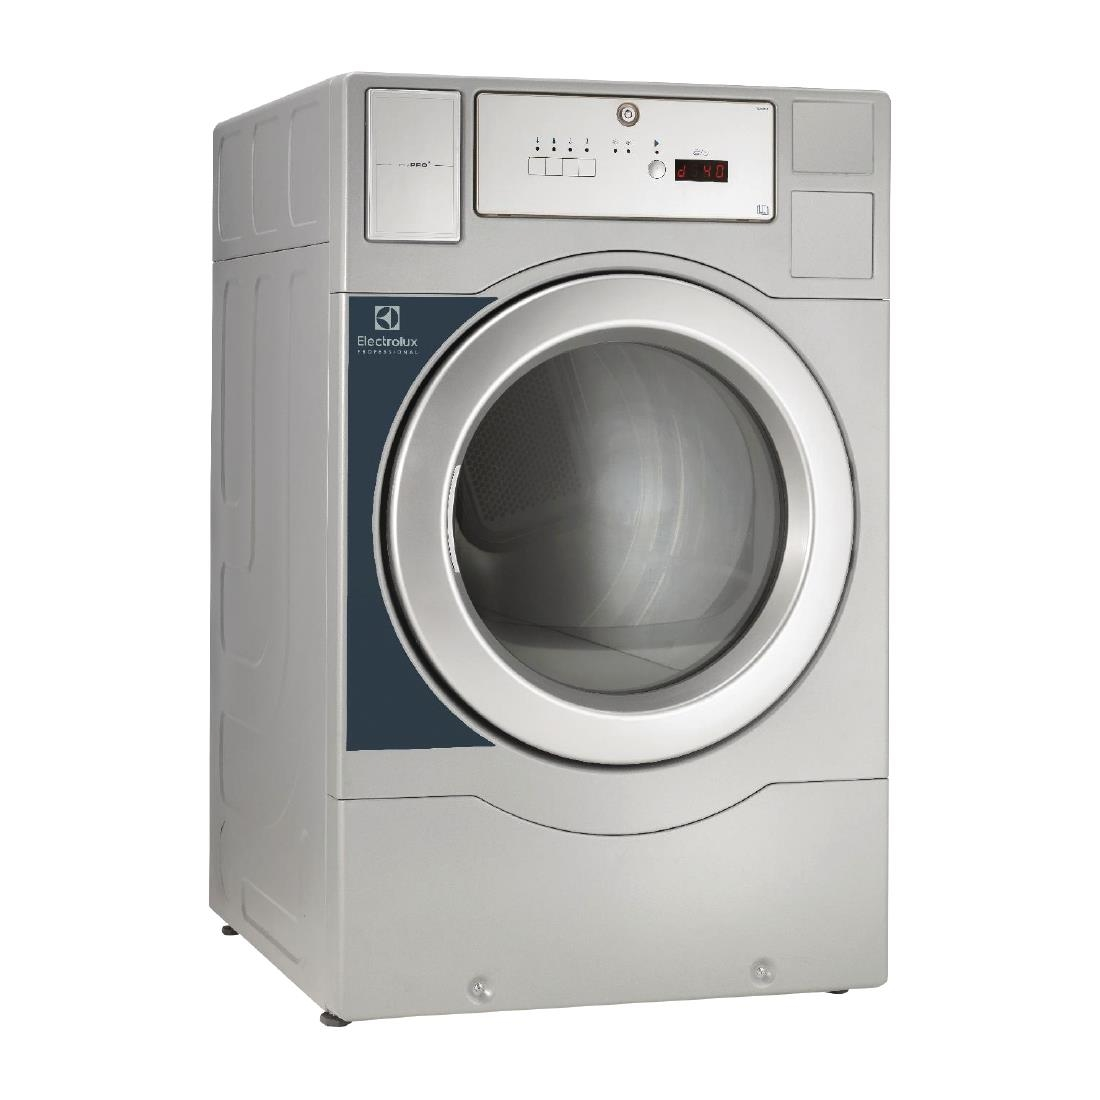 Image of Electrolux myPROXL 12KG Vented Dryer TE1220E